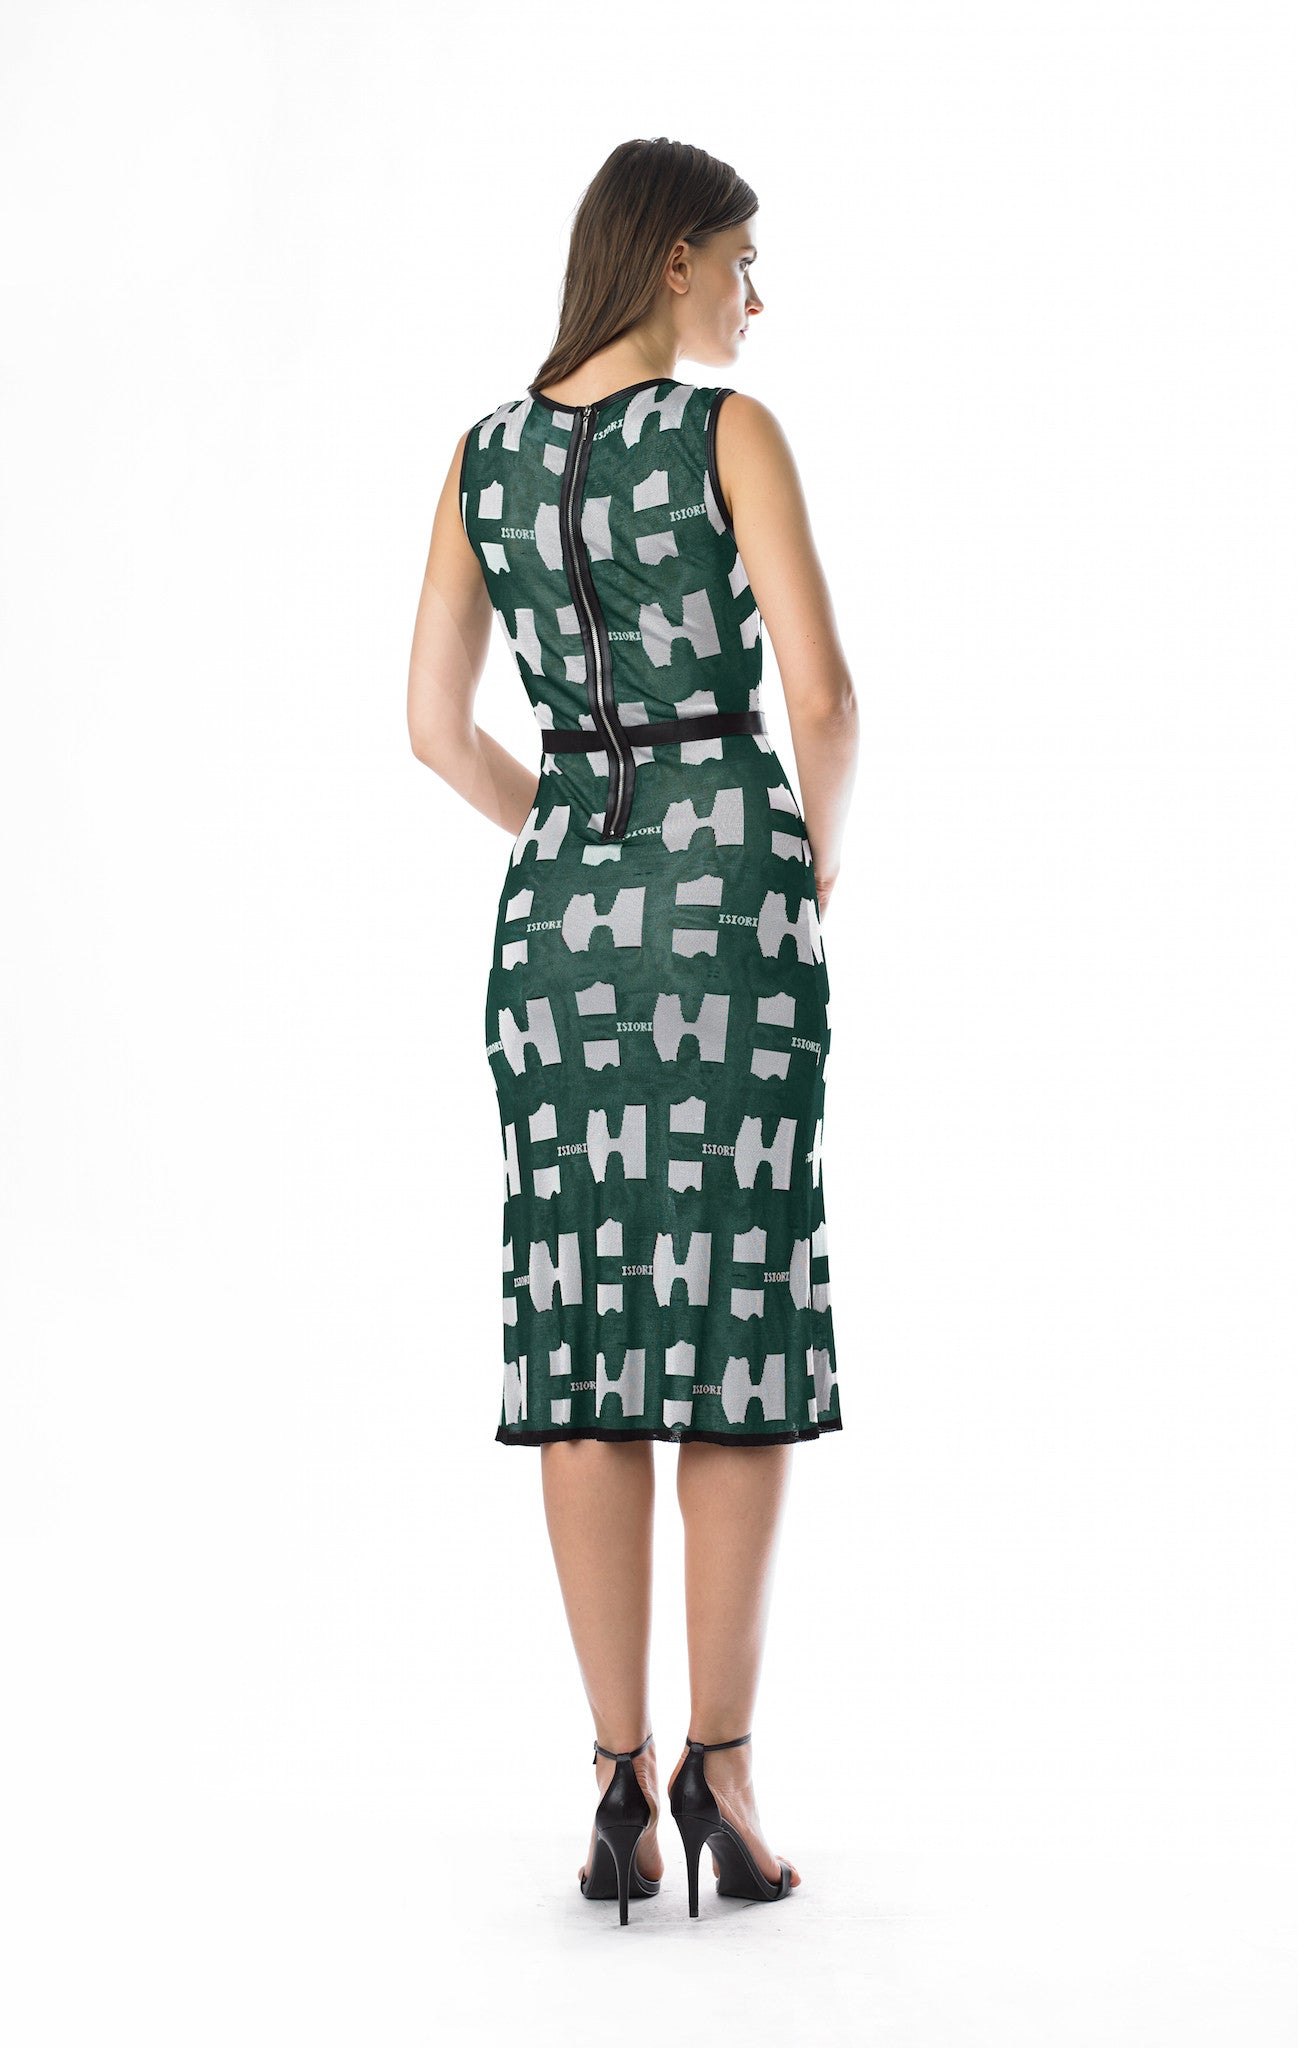 Historic New York HC Favicon Signature Dress - Historic New York